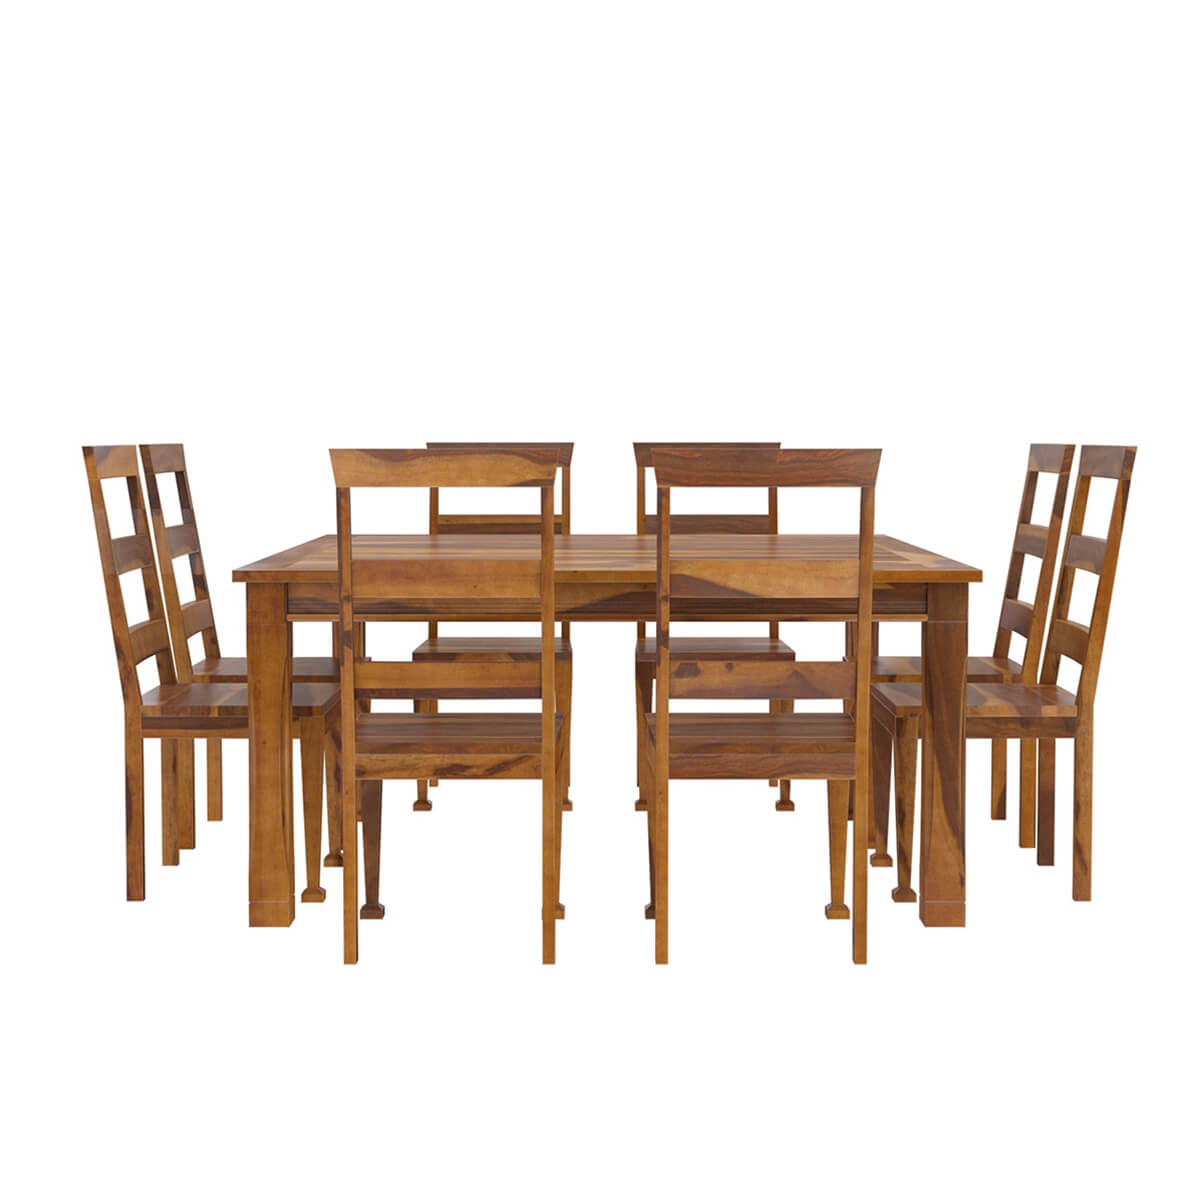 Dining Room Dining Table And Chair Sets Appalachian Wood Rustic Square